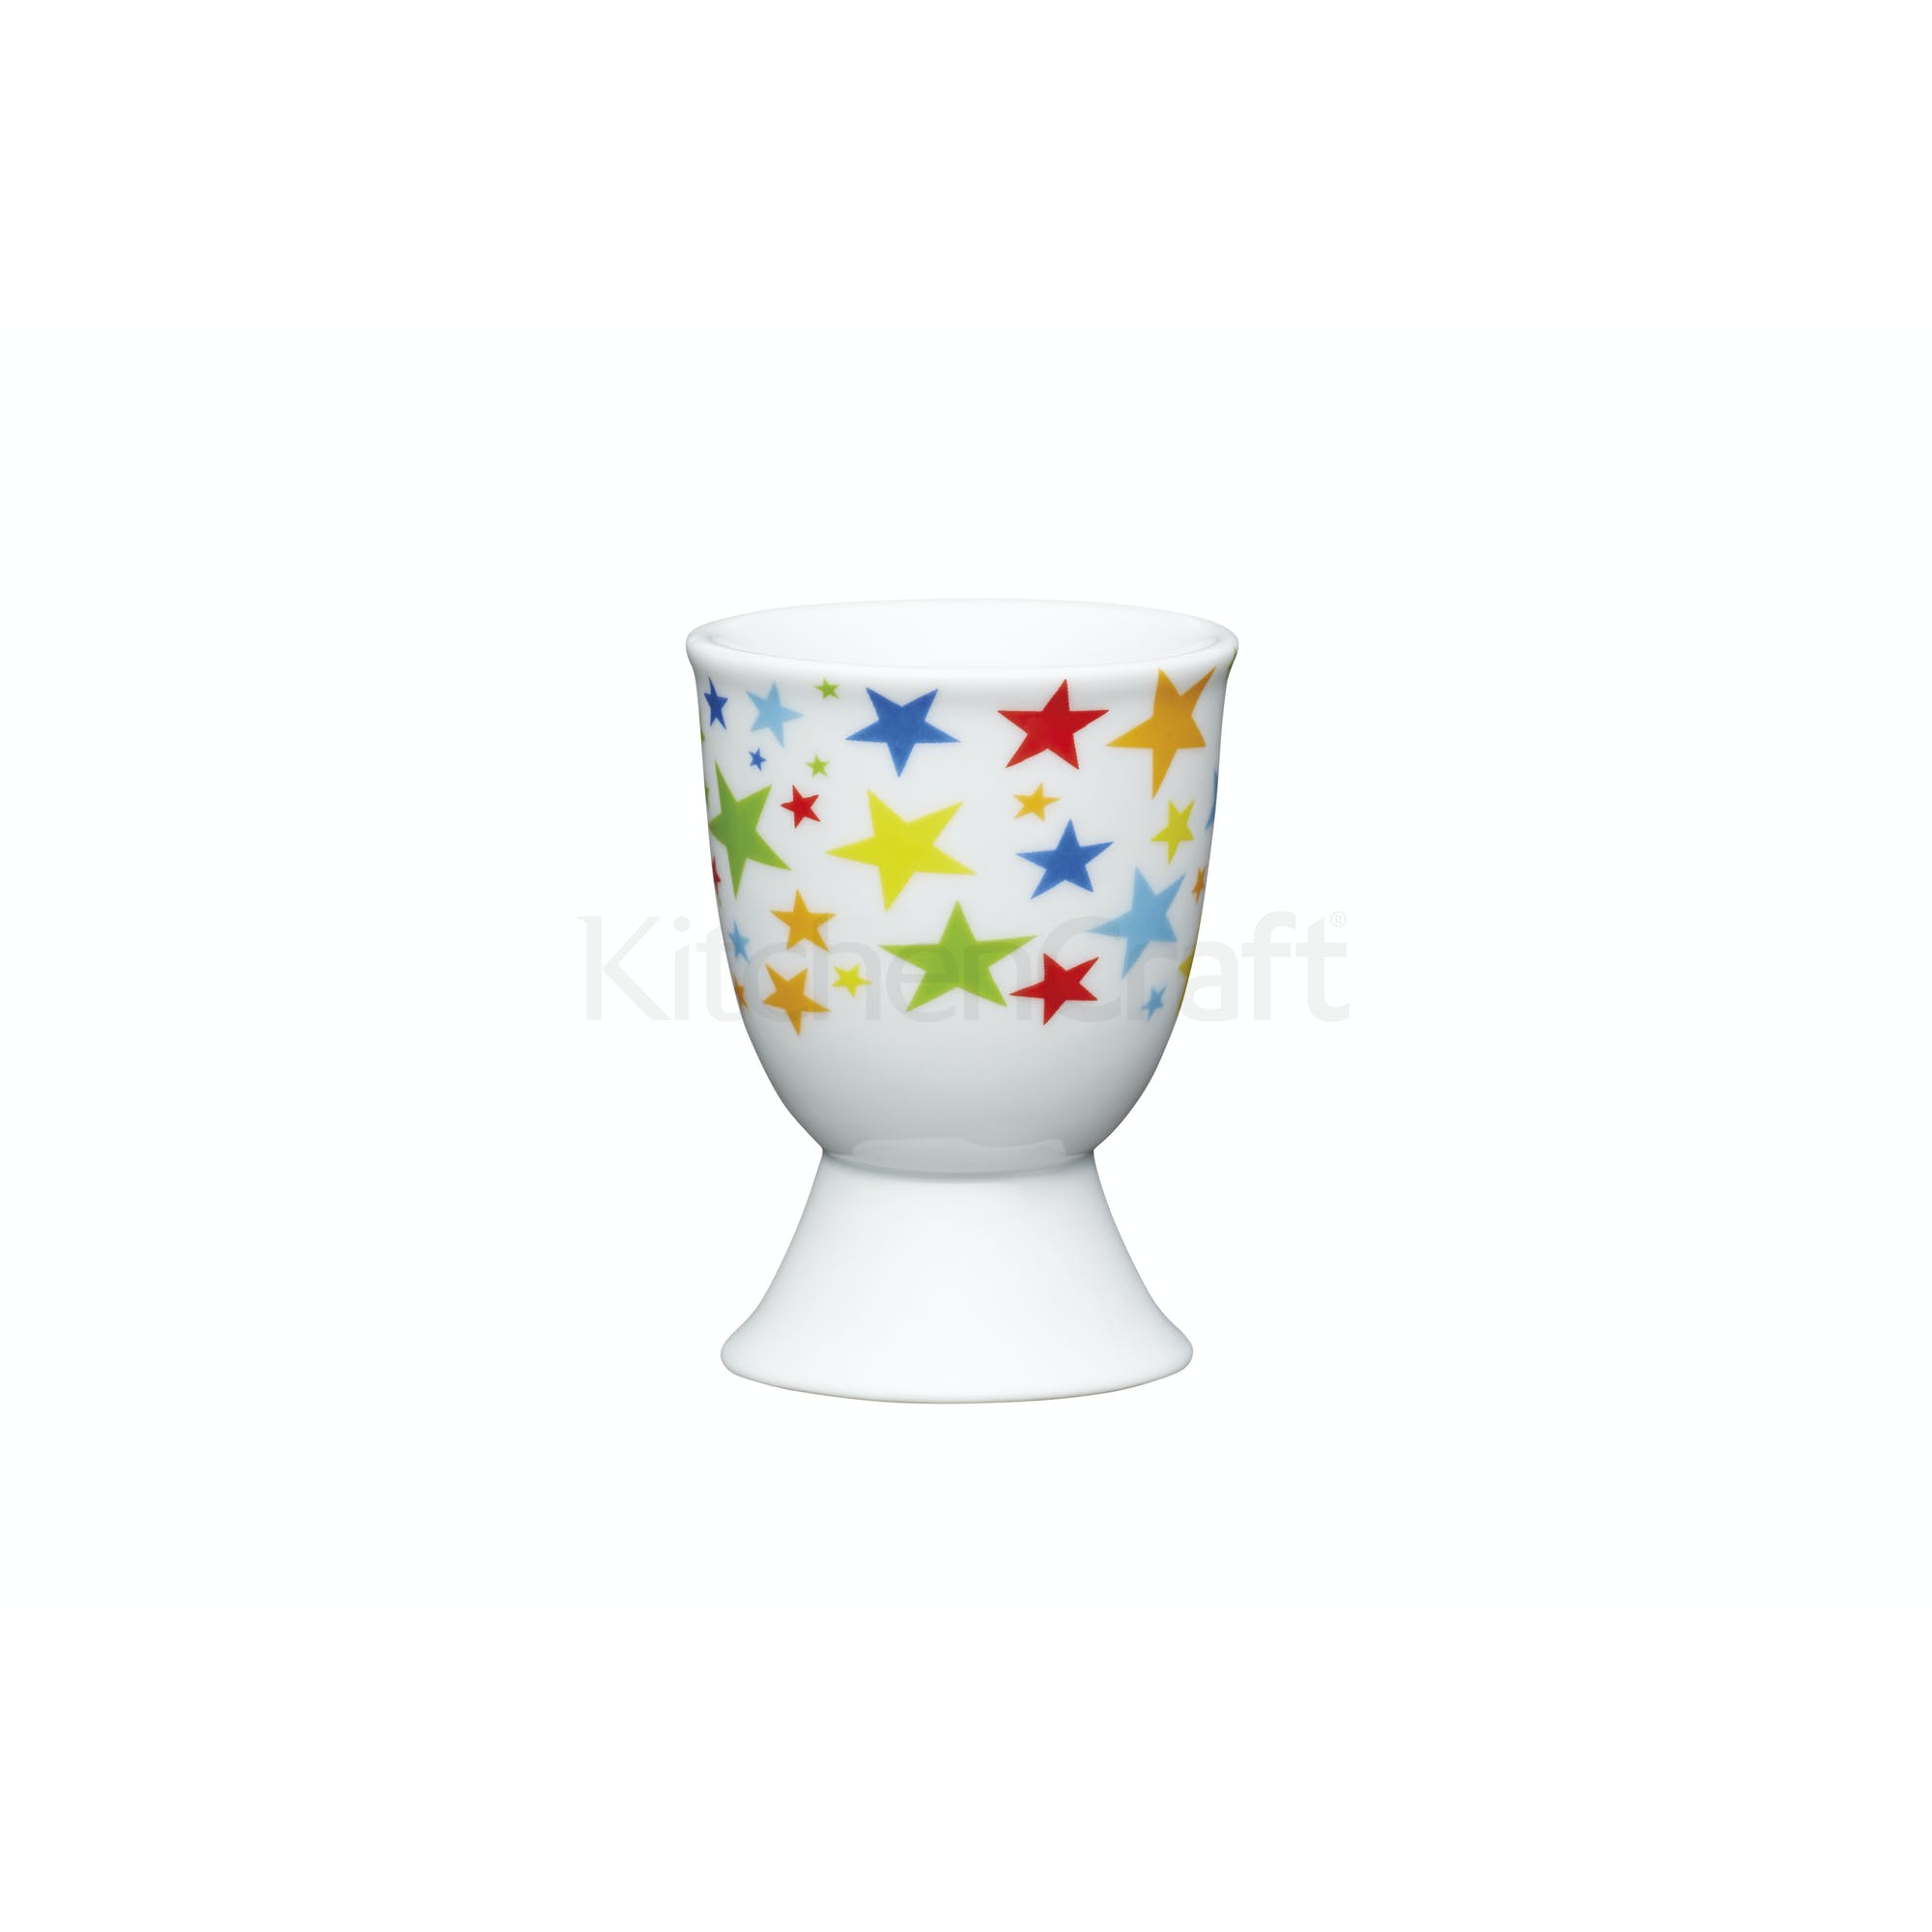 Kitchencraft Brights Stars Porcelain Egg Cup Egg Cups Eating